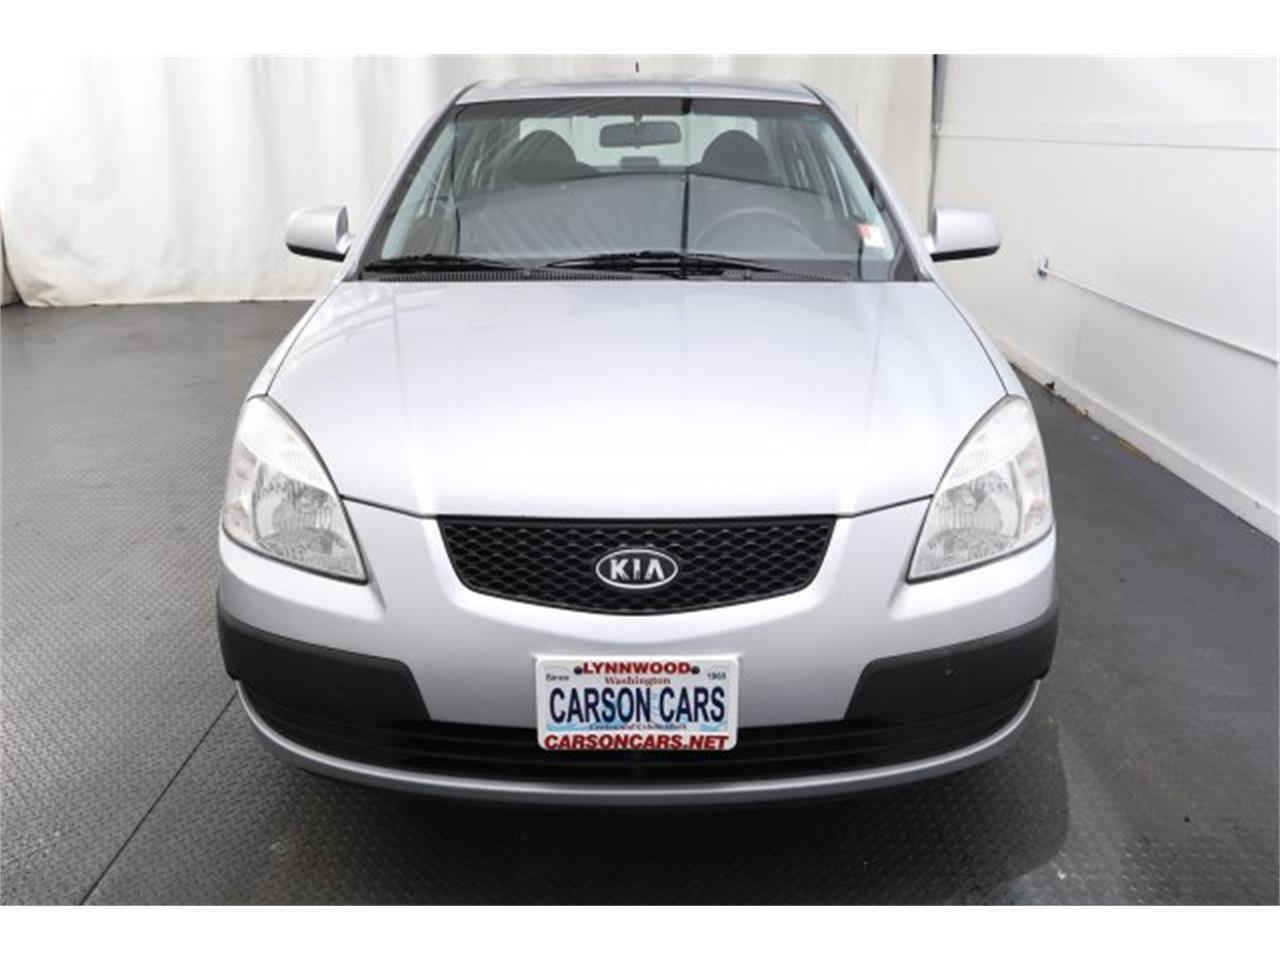 Large Picture of '07 Kia Rio located in Washington - $4,995.00 Offered by Carson Cars - LB8T